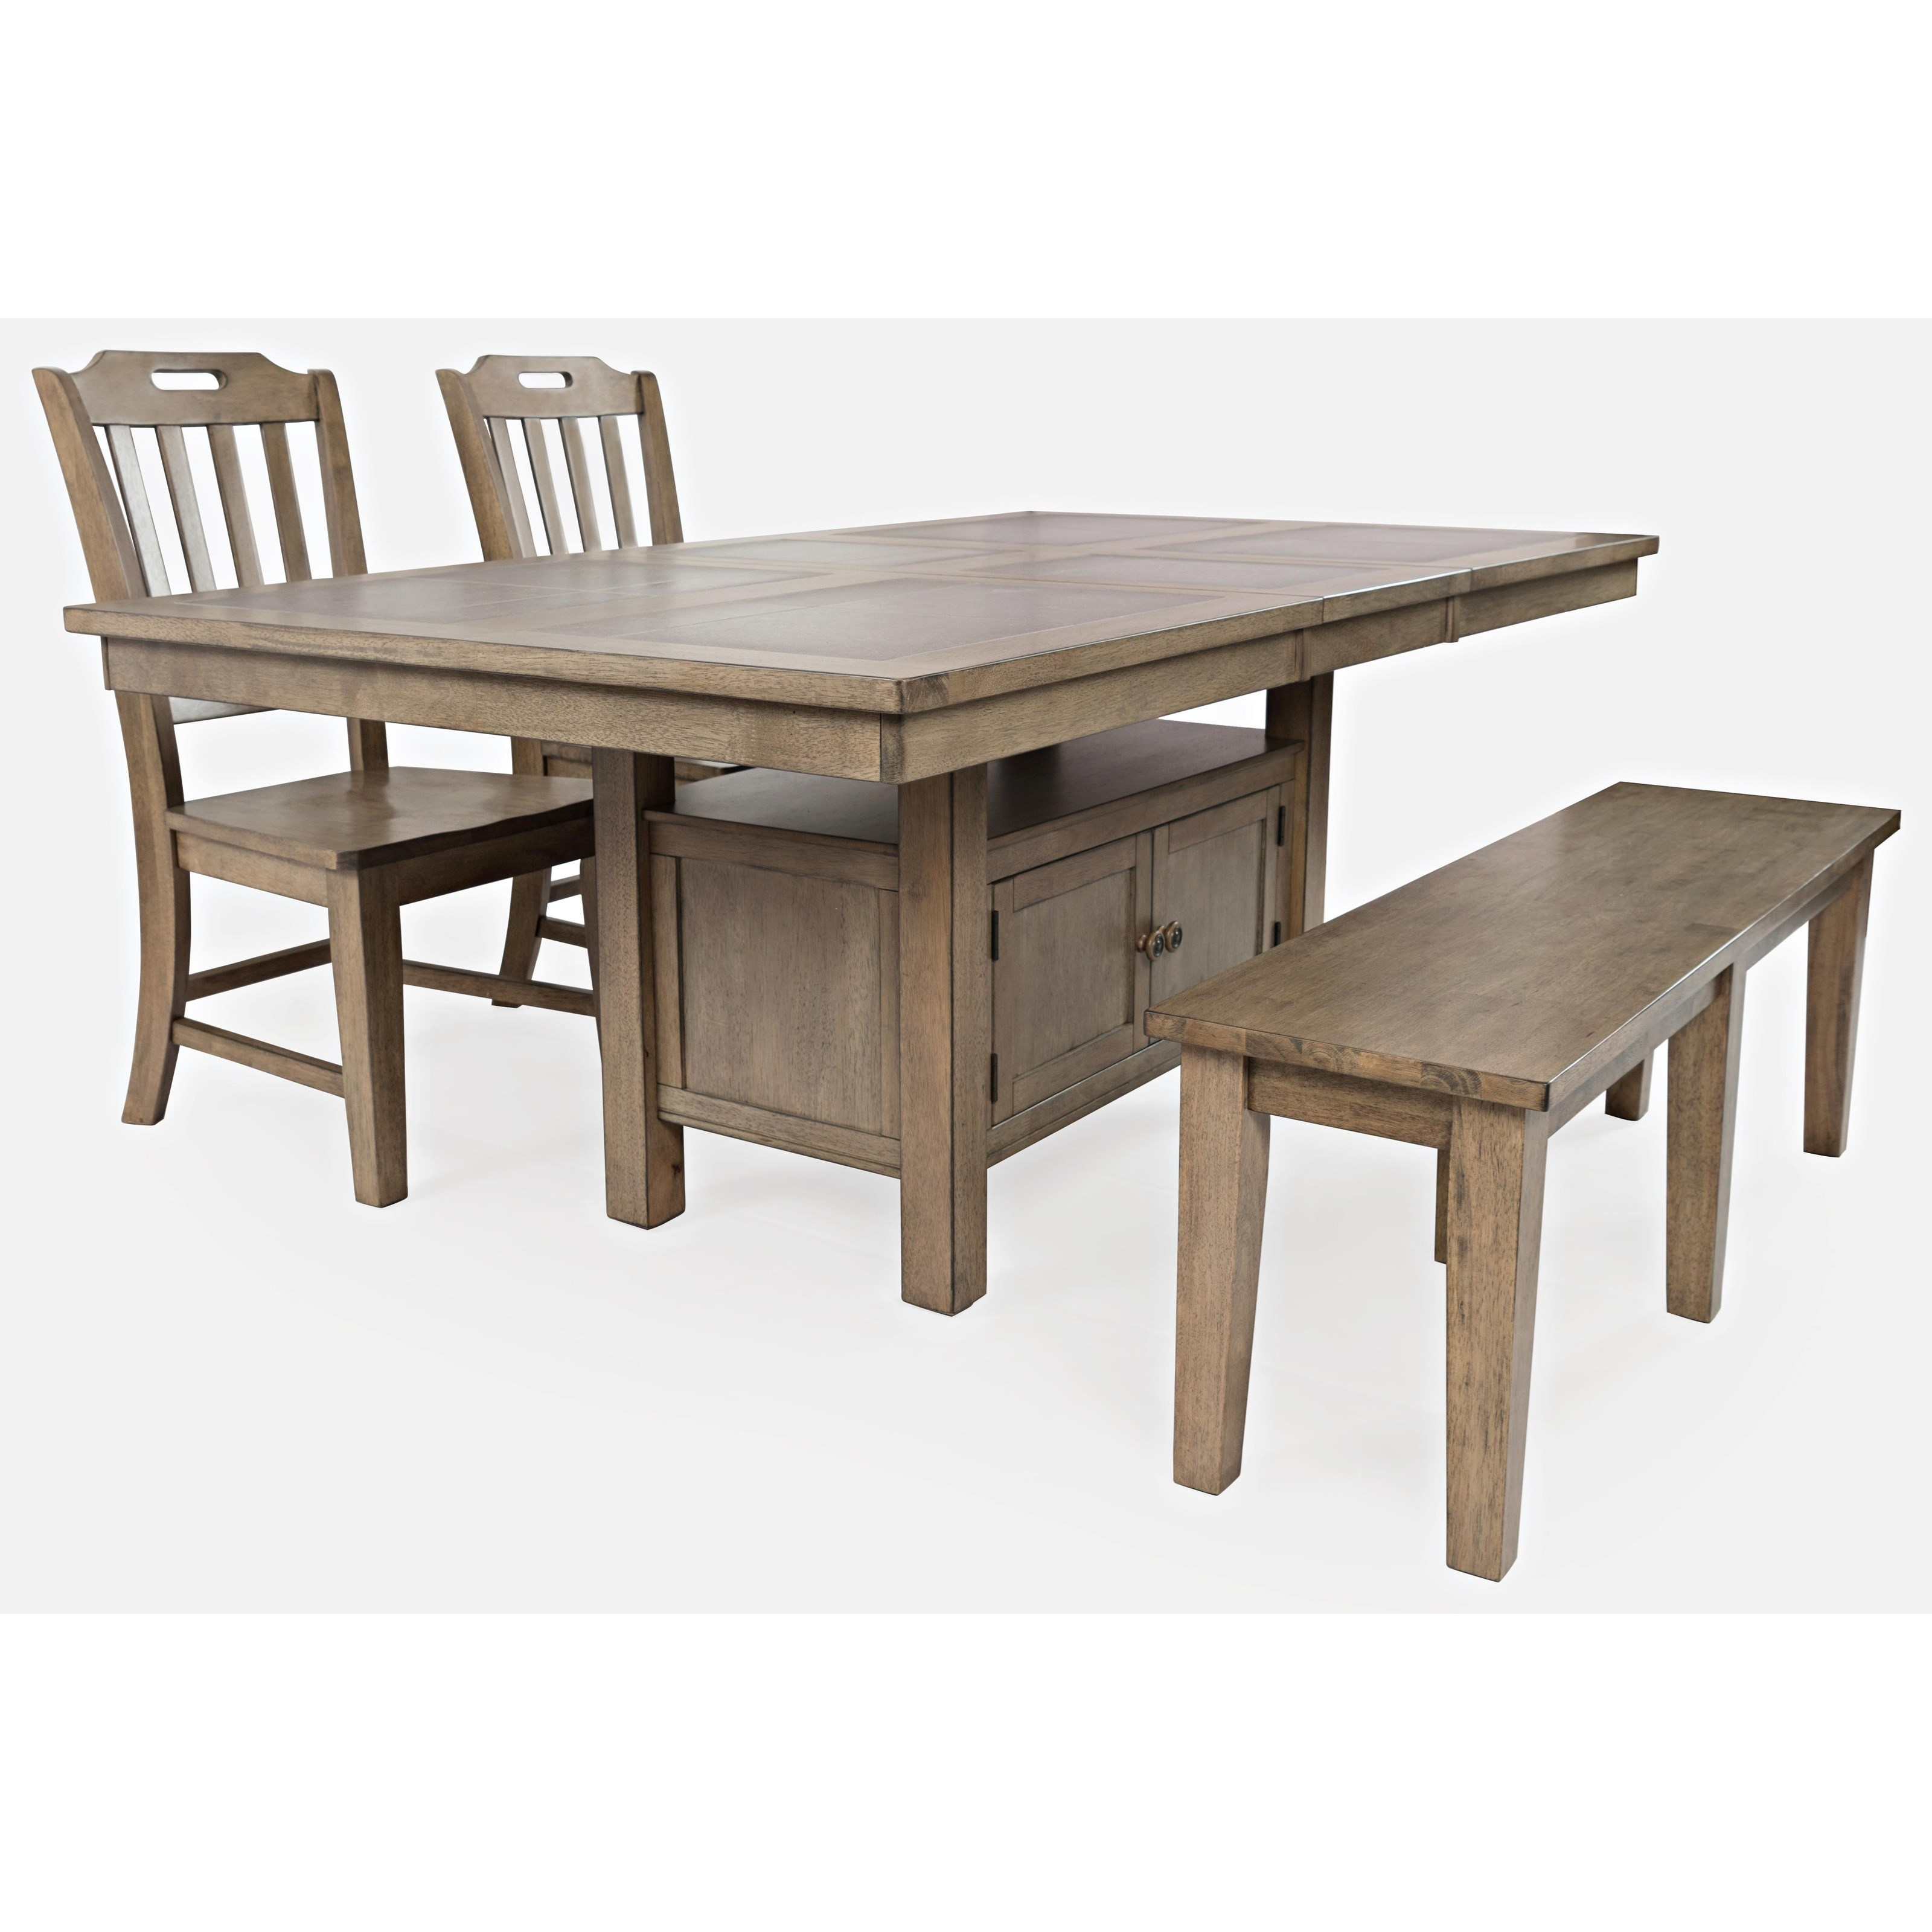 Prescott Park 4-Piece Dining Table and Chair Set by Jo Furniture Co. at Ruby Gordon Home